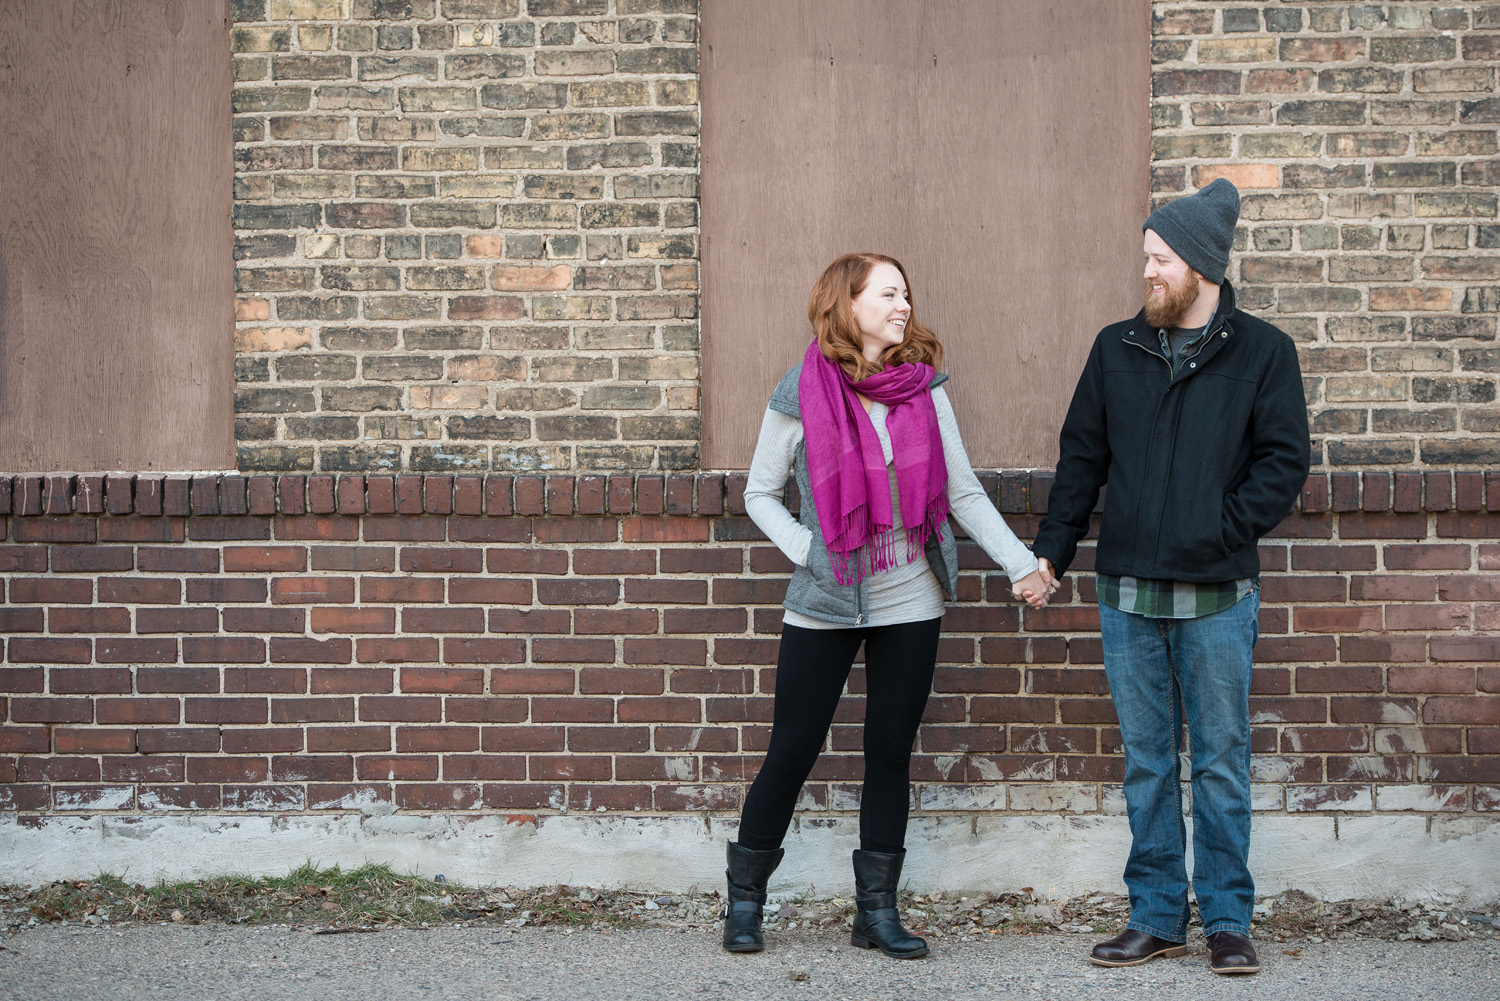 nicole and patrick outside indeed brewing company in minneapolis